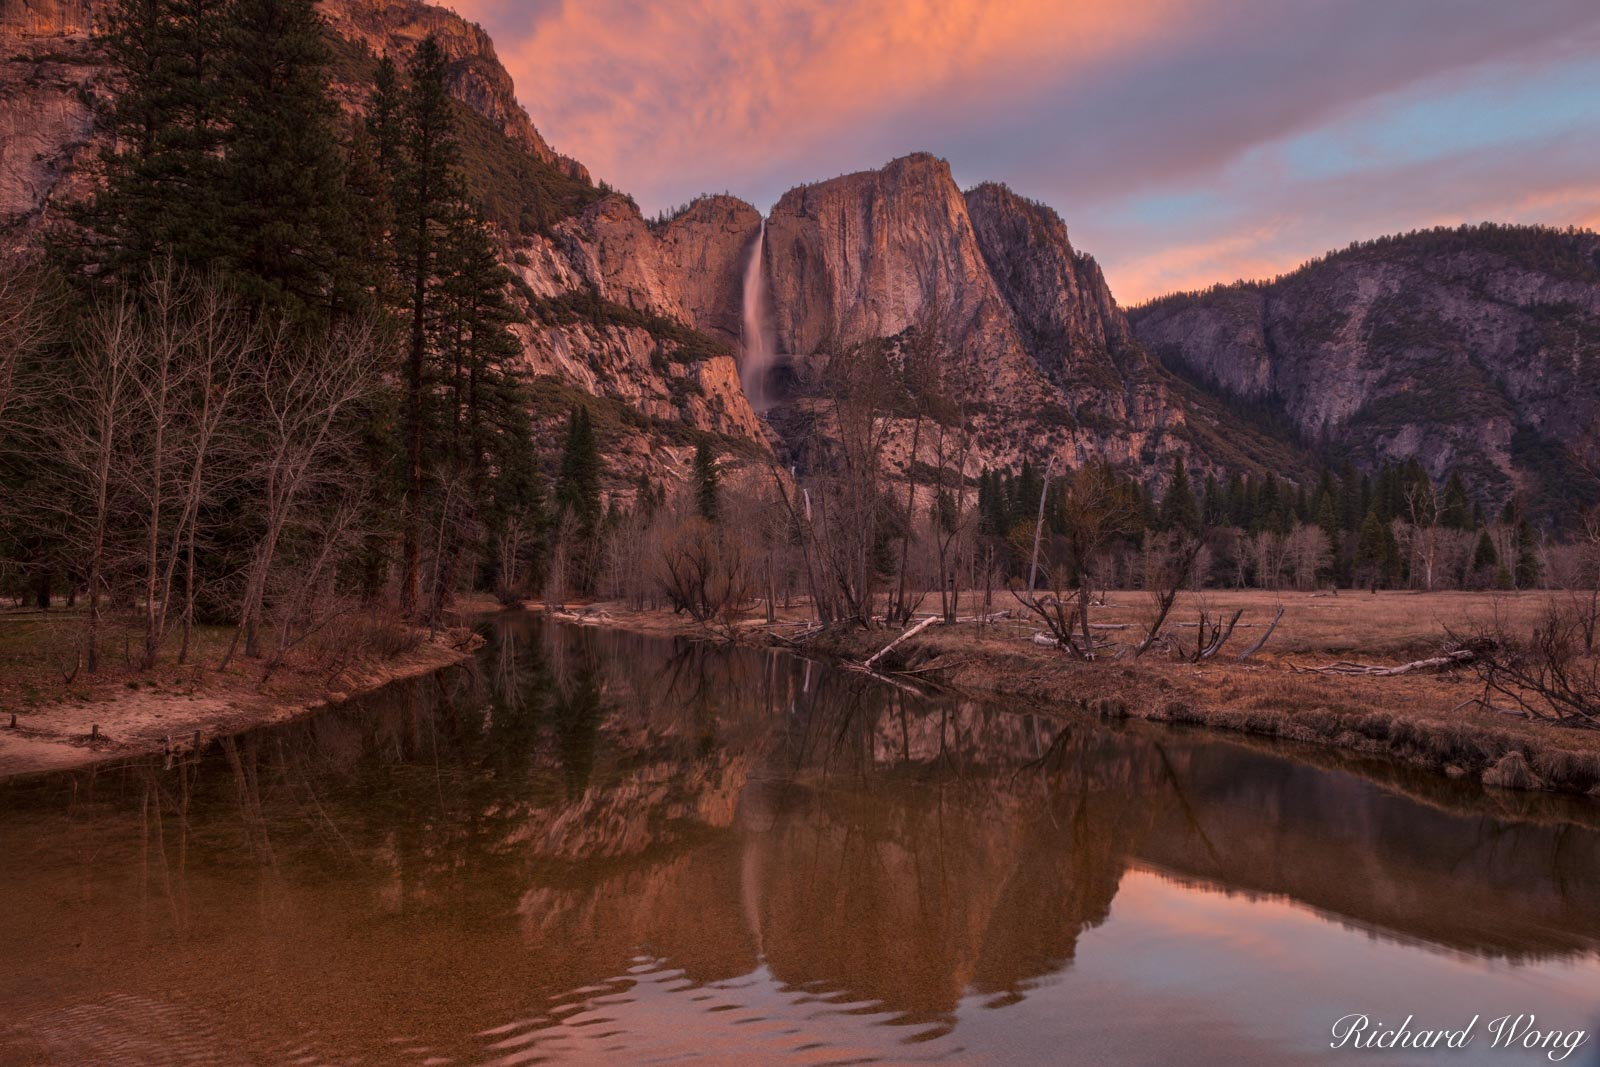 Yosemite Falls and Merced River at Sunrise From Swinging Bridge, Yosemite National Park, California, photo, photo